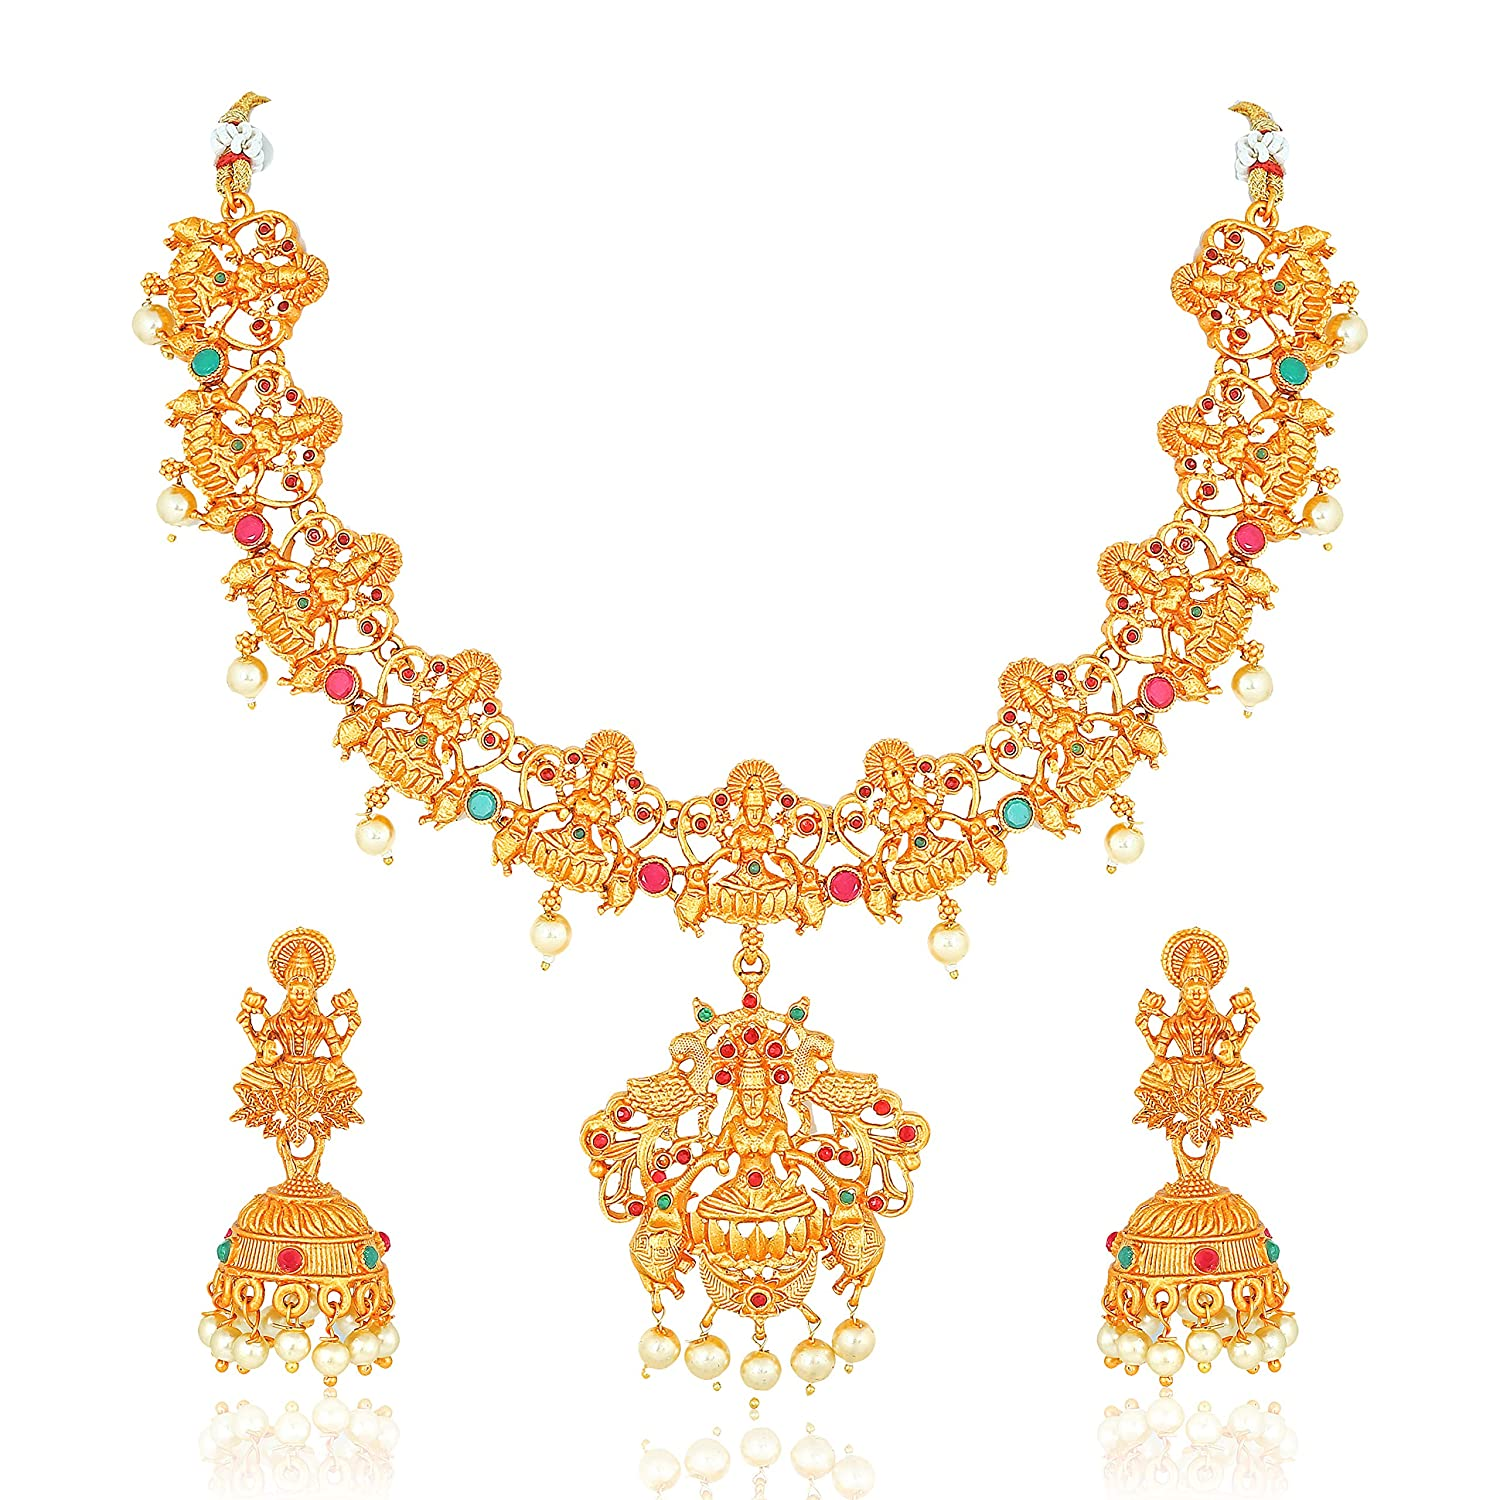 Jewelry & Watches Antique Oxidized Two Tone Necklace Set With Jhumka Earrings Temple Jewellery Jewelry Sets